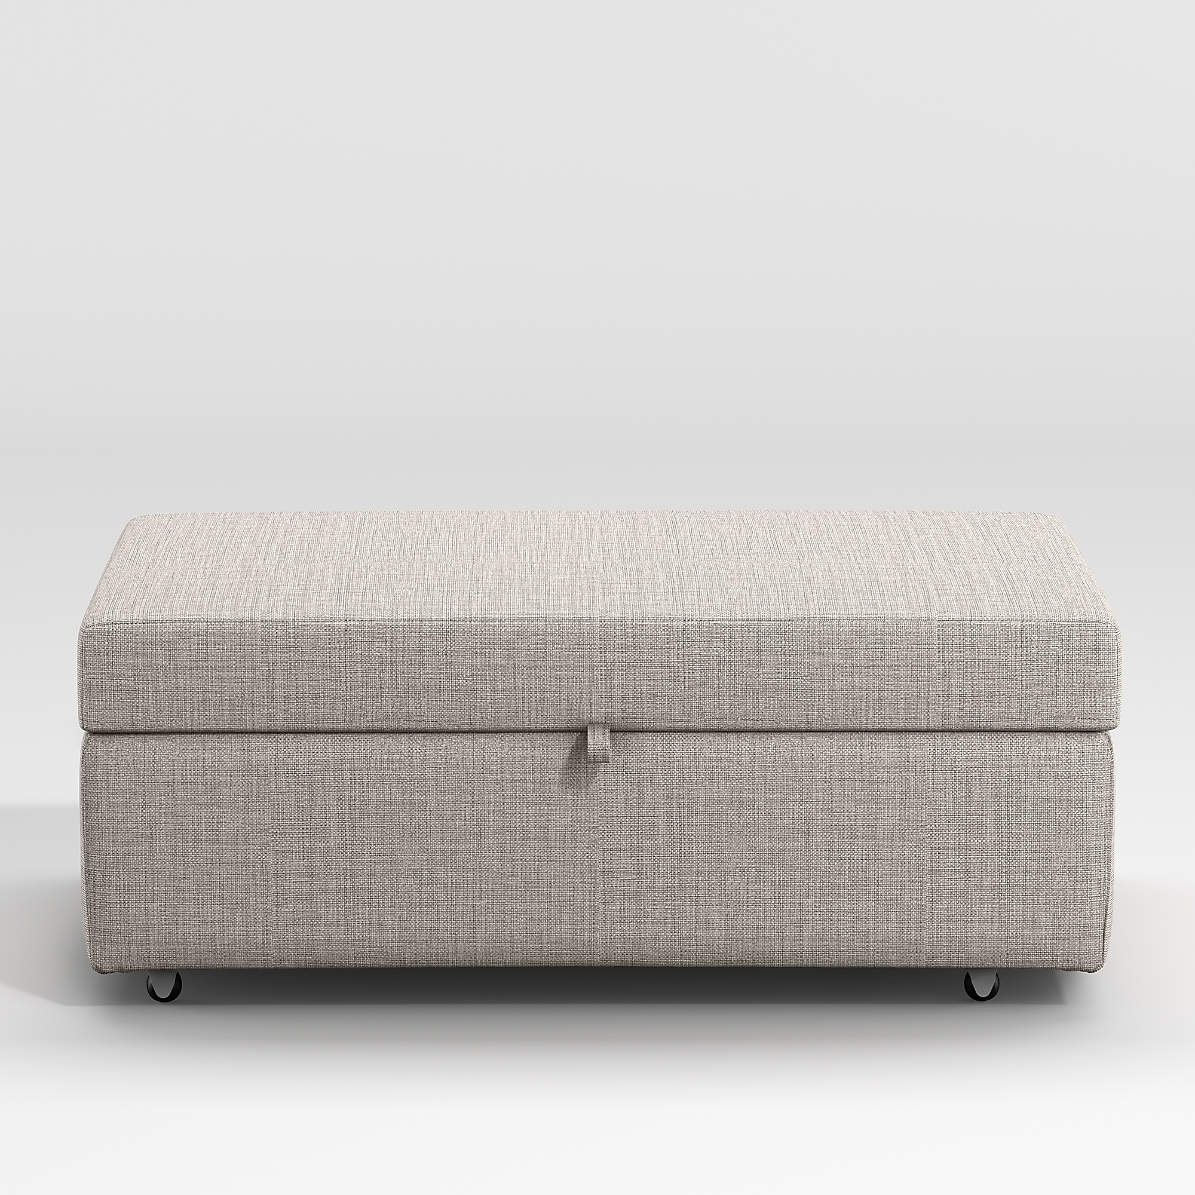 Barrett Storage Ottoman With Tray And Casters Reviews Crate And Barrel